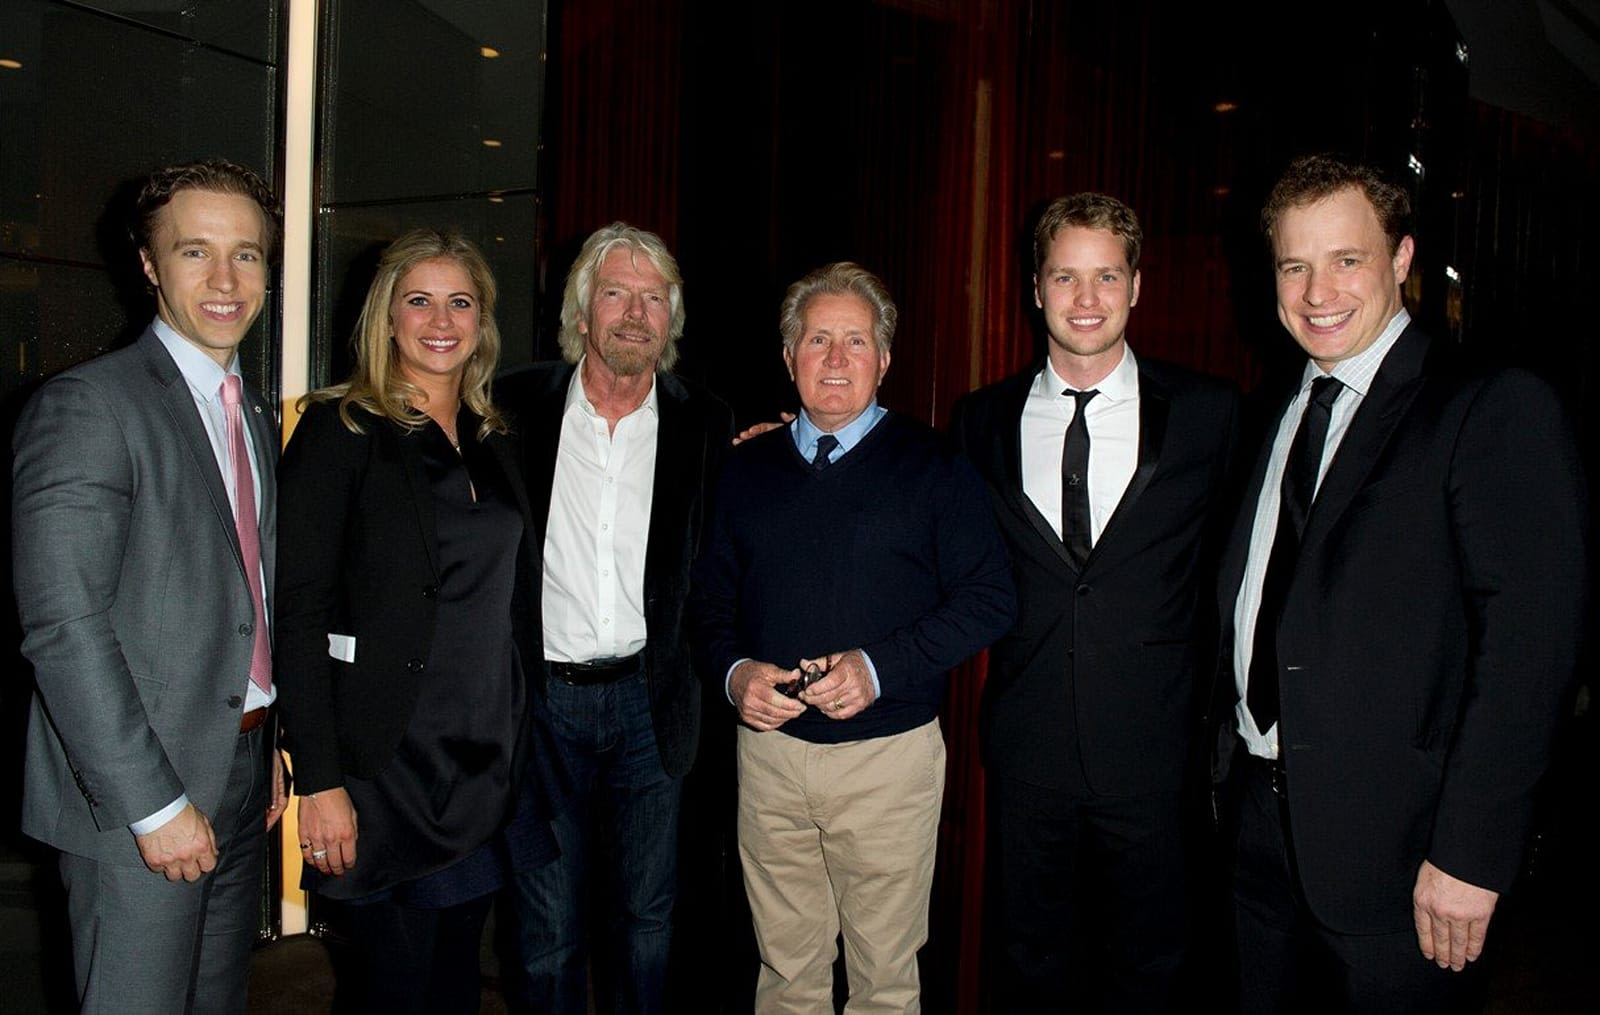 Richard Branson with Holly Branson, Sam Branson, Craig and Marc Kielburger and Martin Sheen